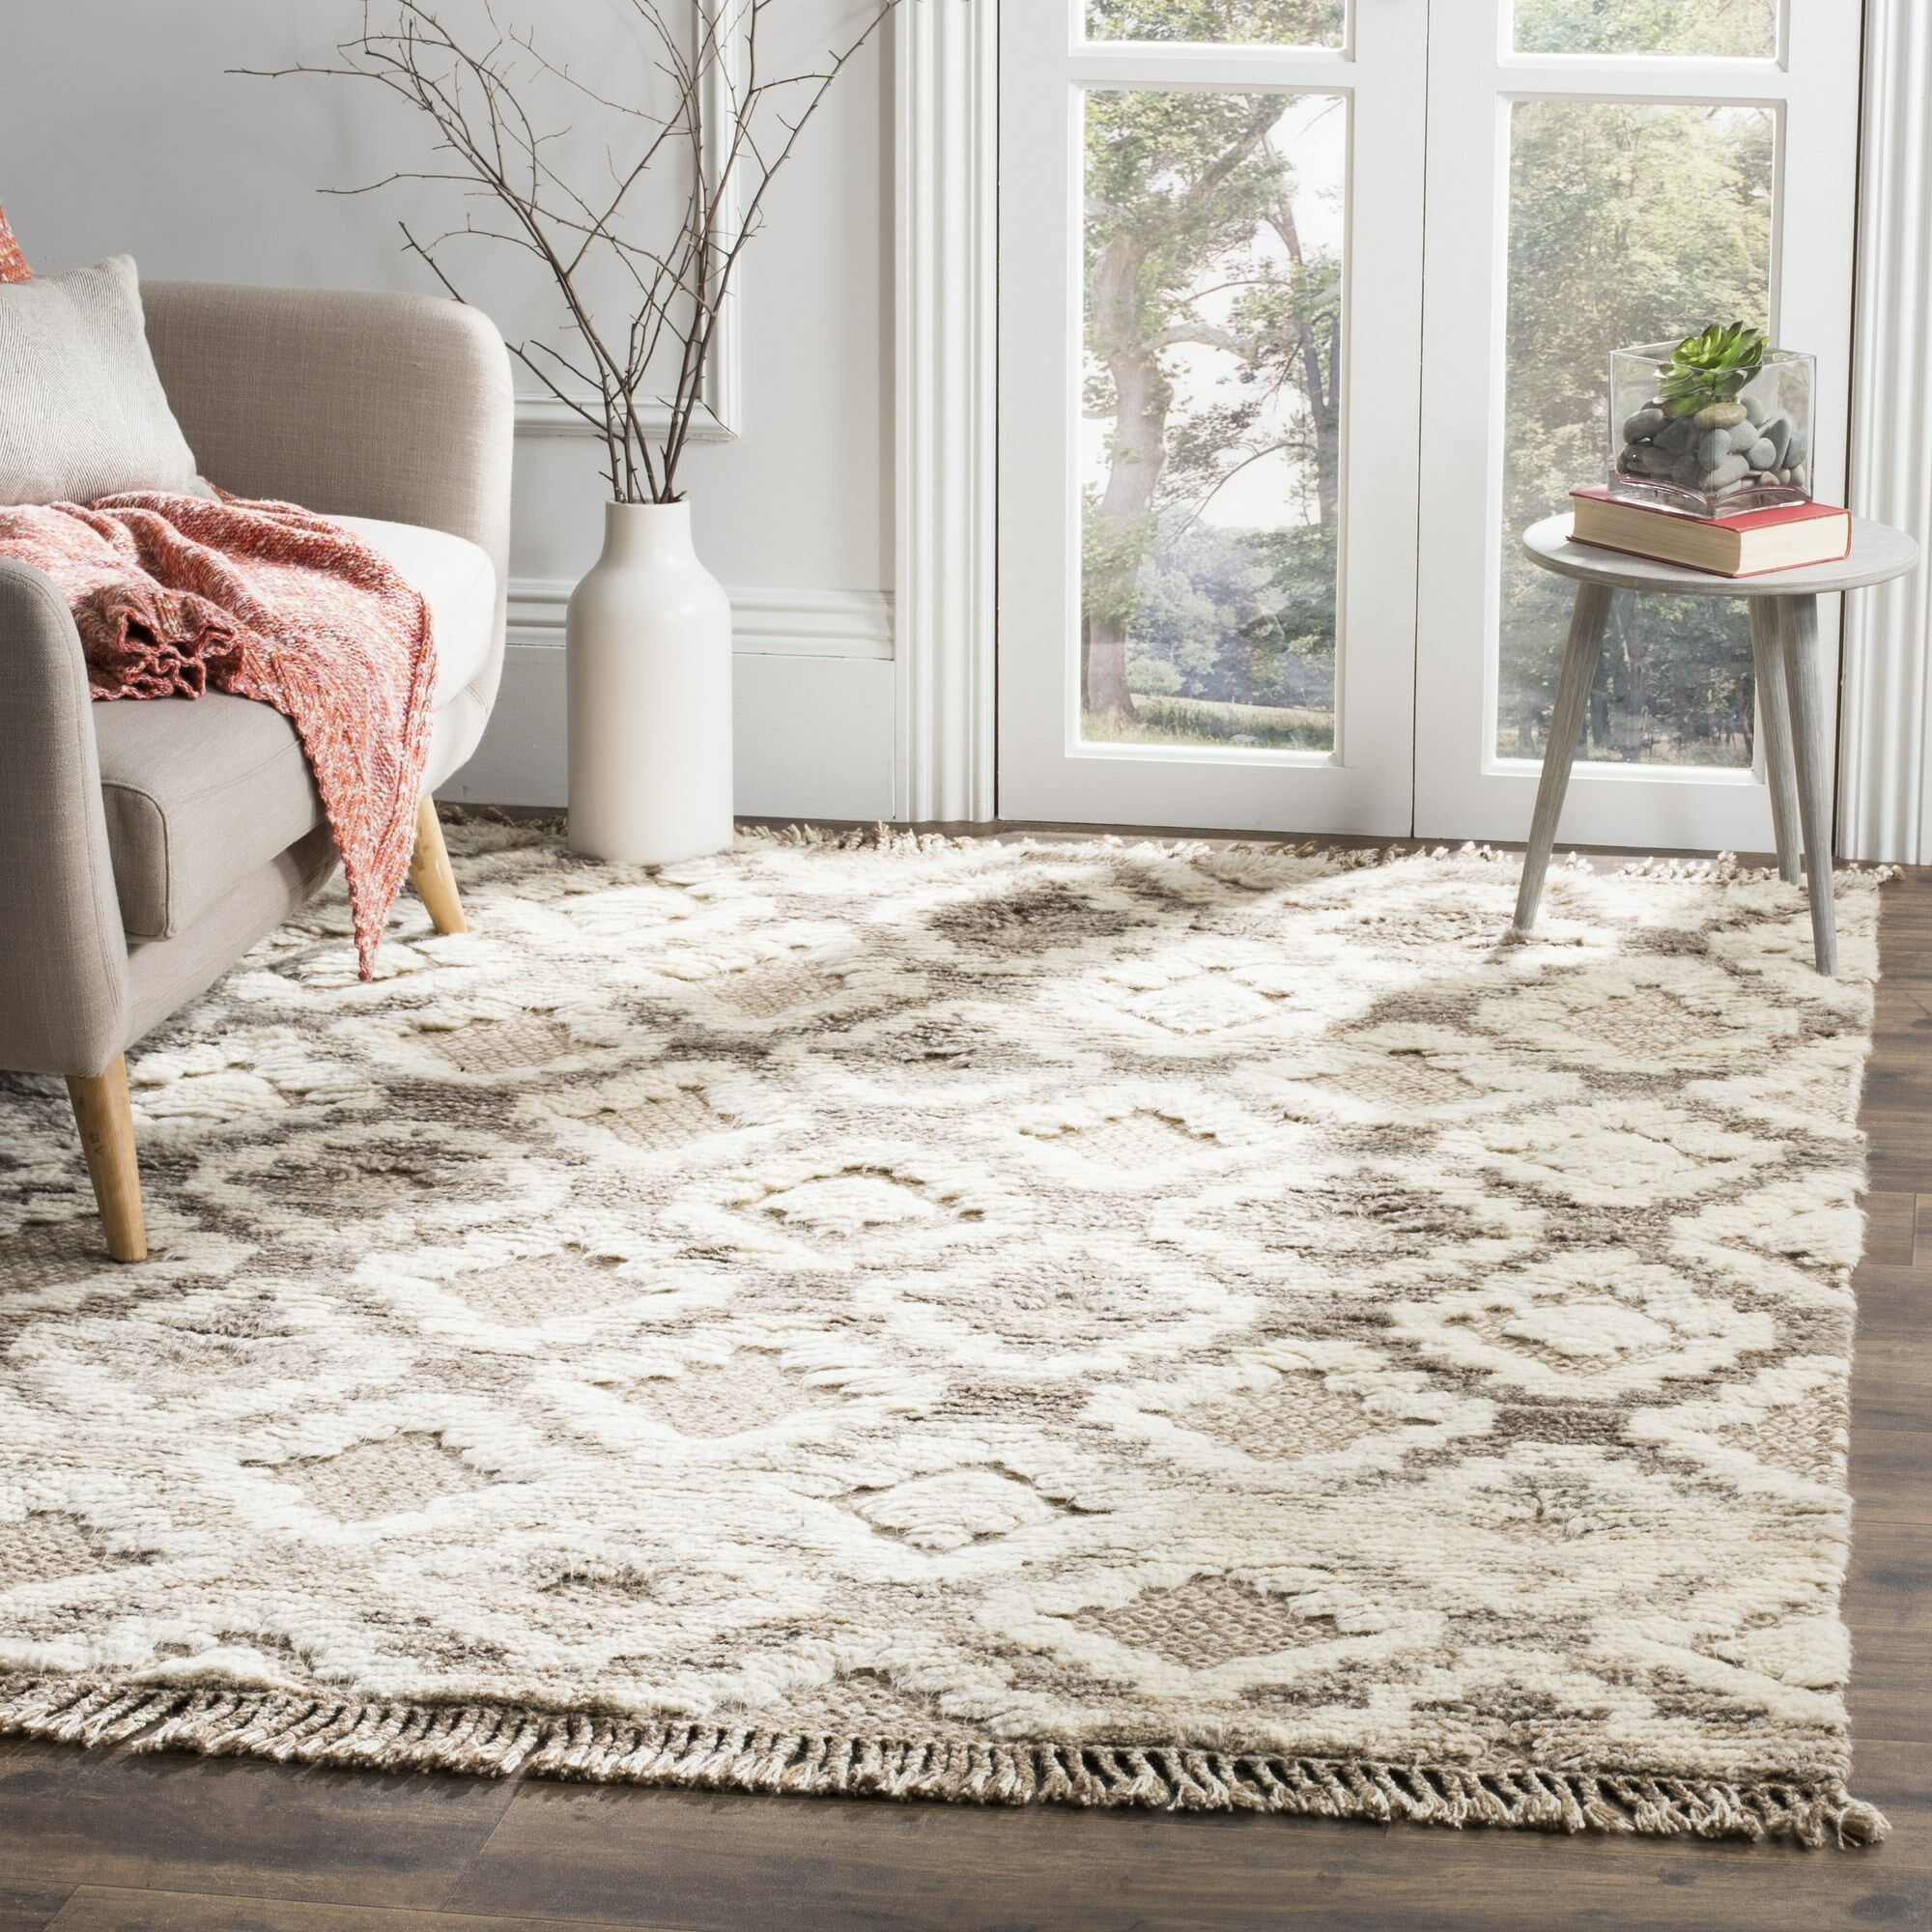 Maffei Hand Woven Wool Ivory/Brown/Beige Area Rug Rug Size: Rectangle 5' x 8'